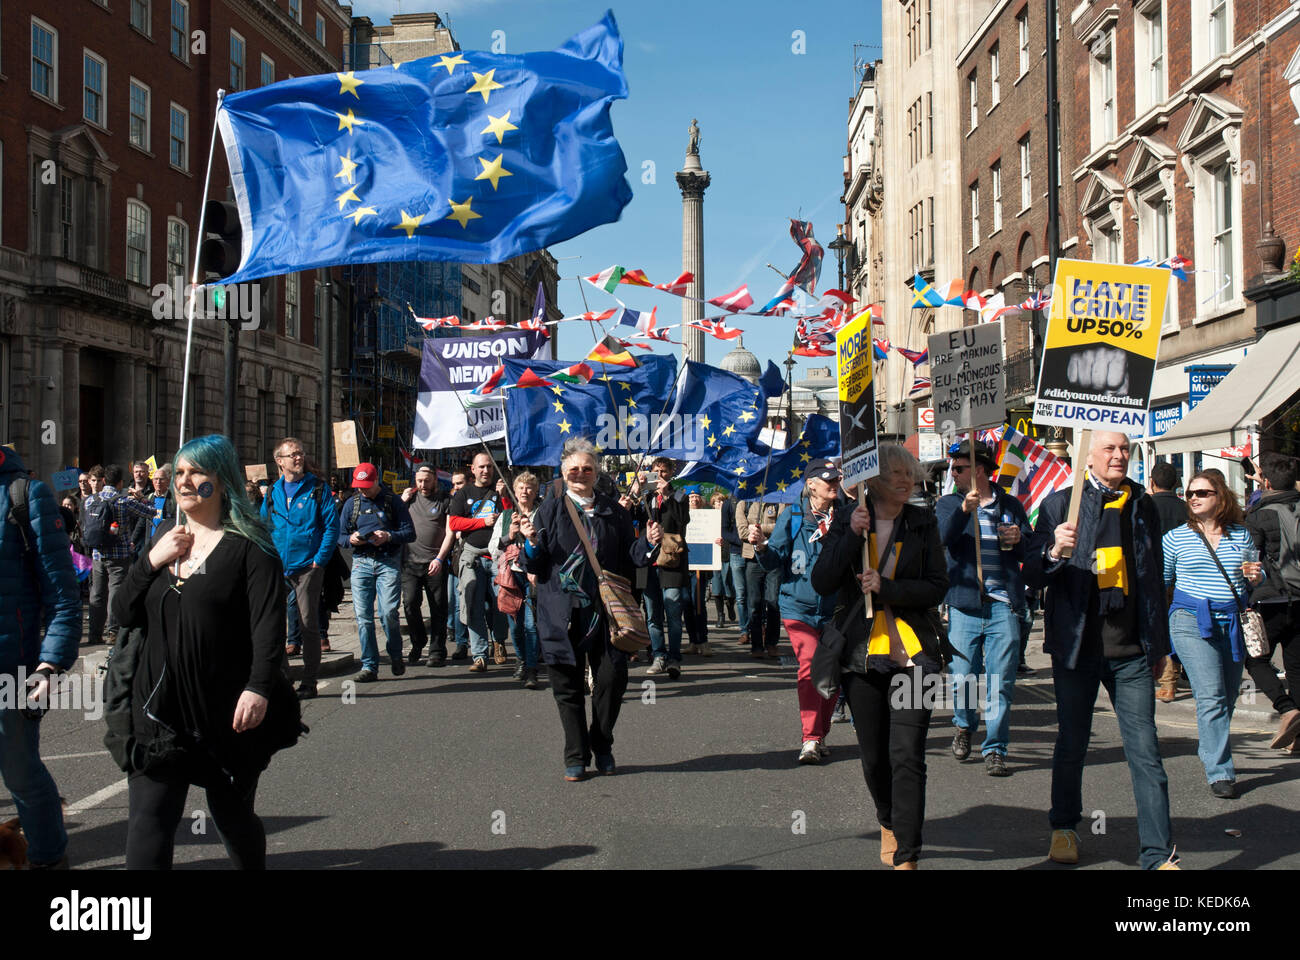 Demonstration in support of Remain/EU with many blue EU flag and poster 'Hate crime up 50% '(since Brexit - Stock Image